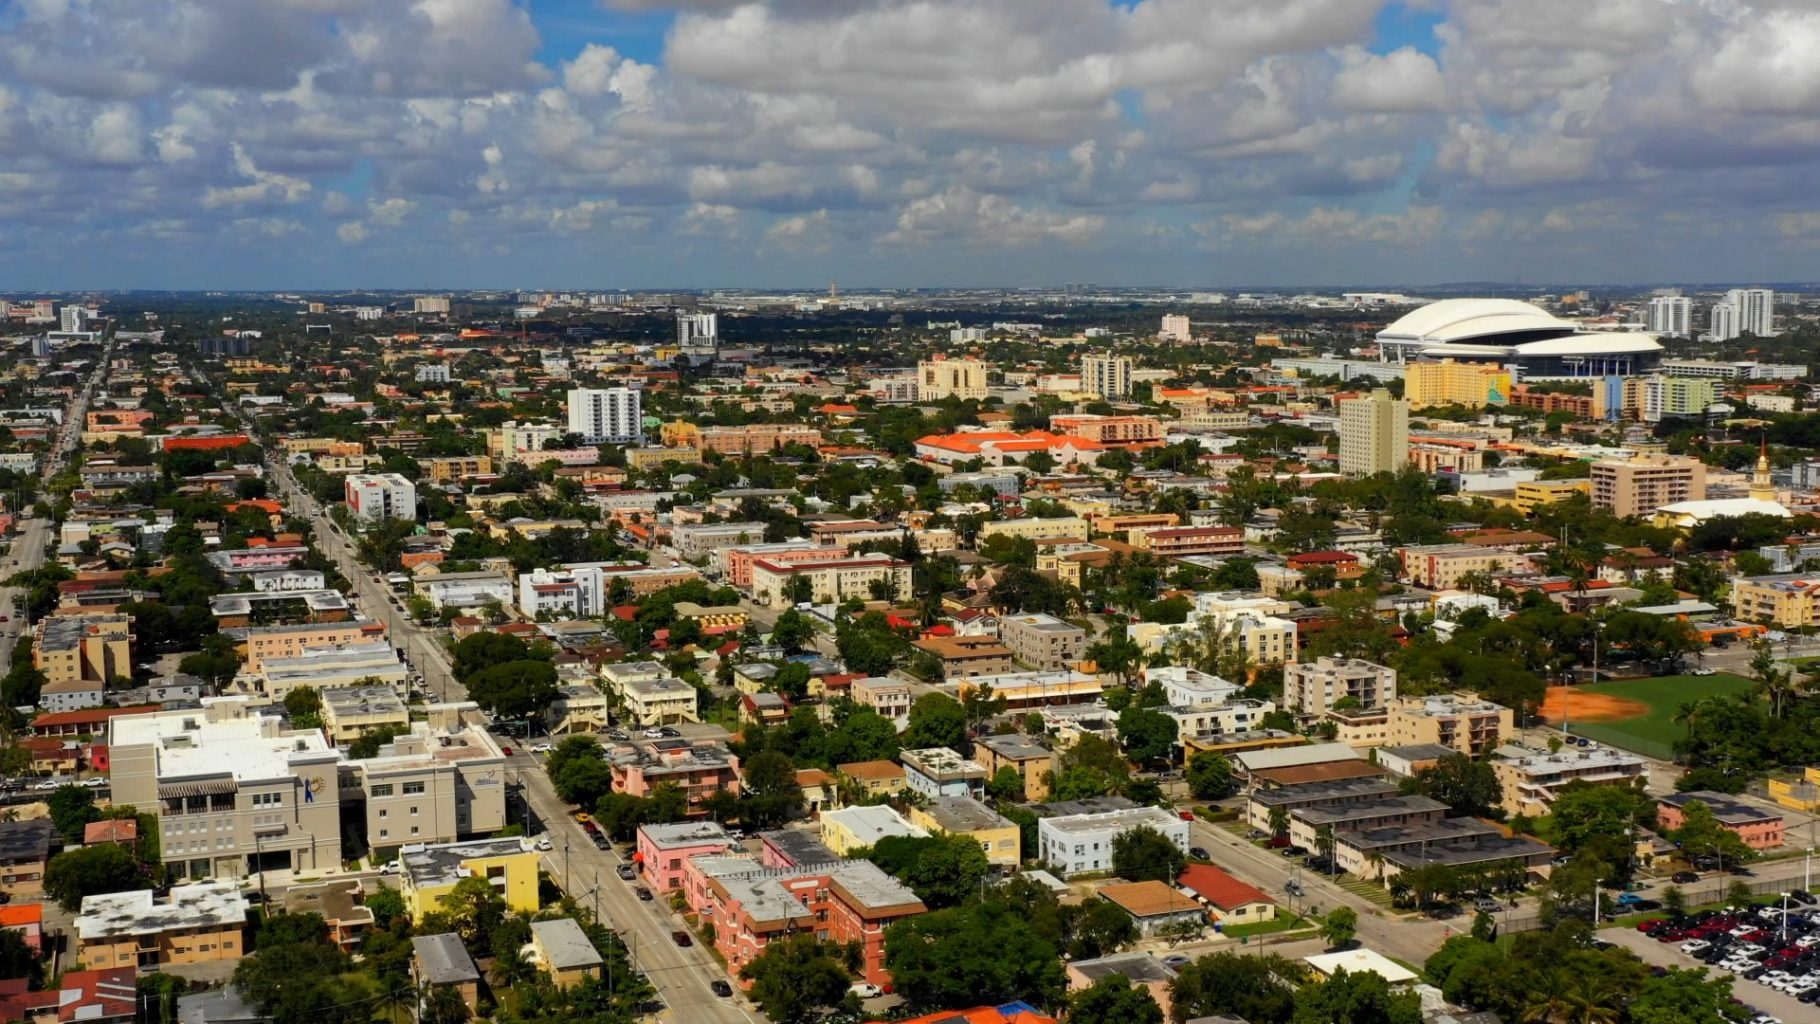 Aerial view of Little Havana